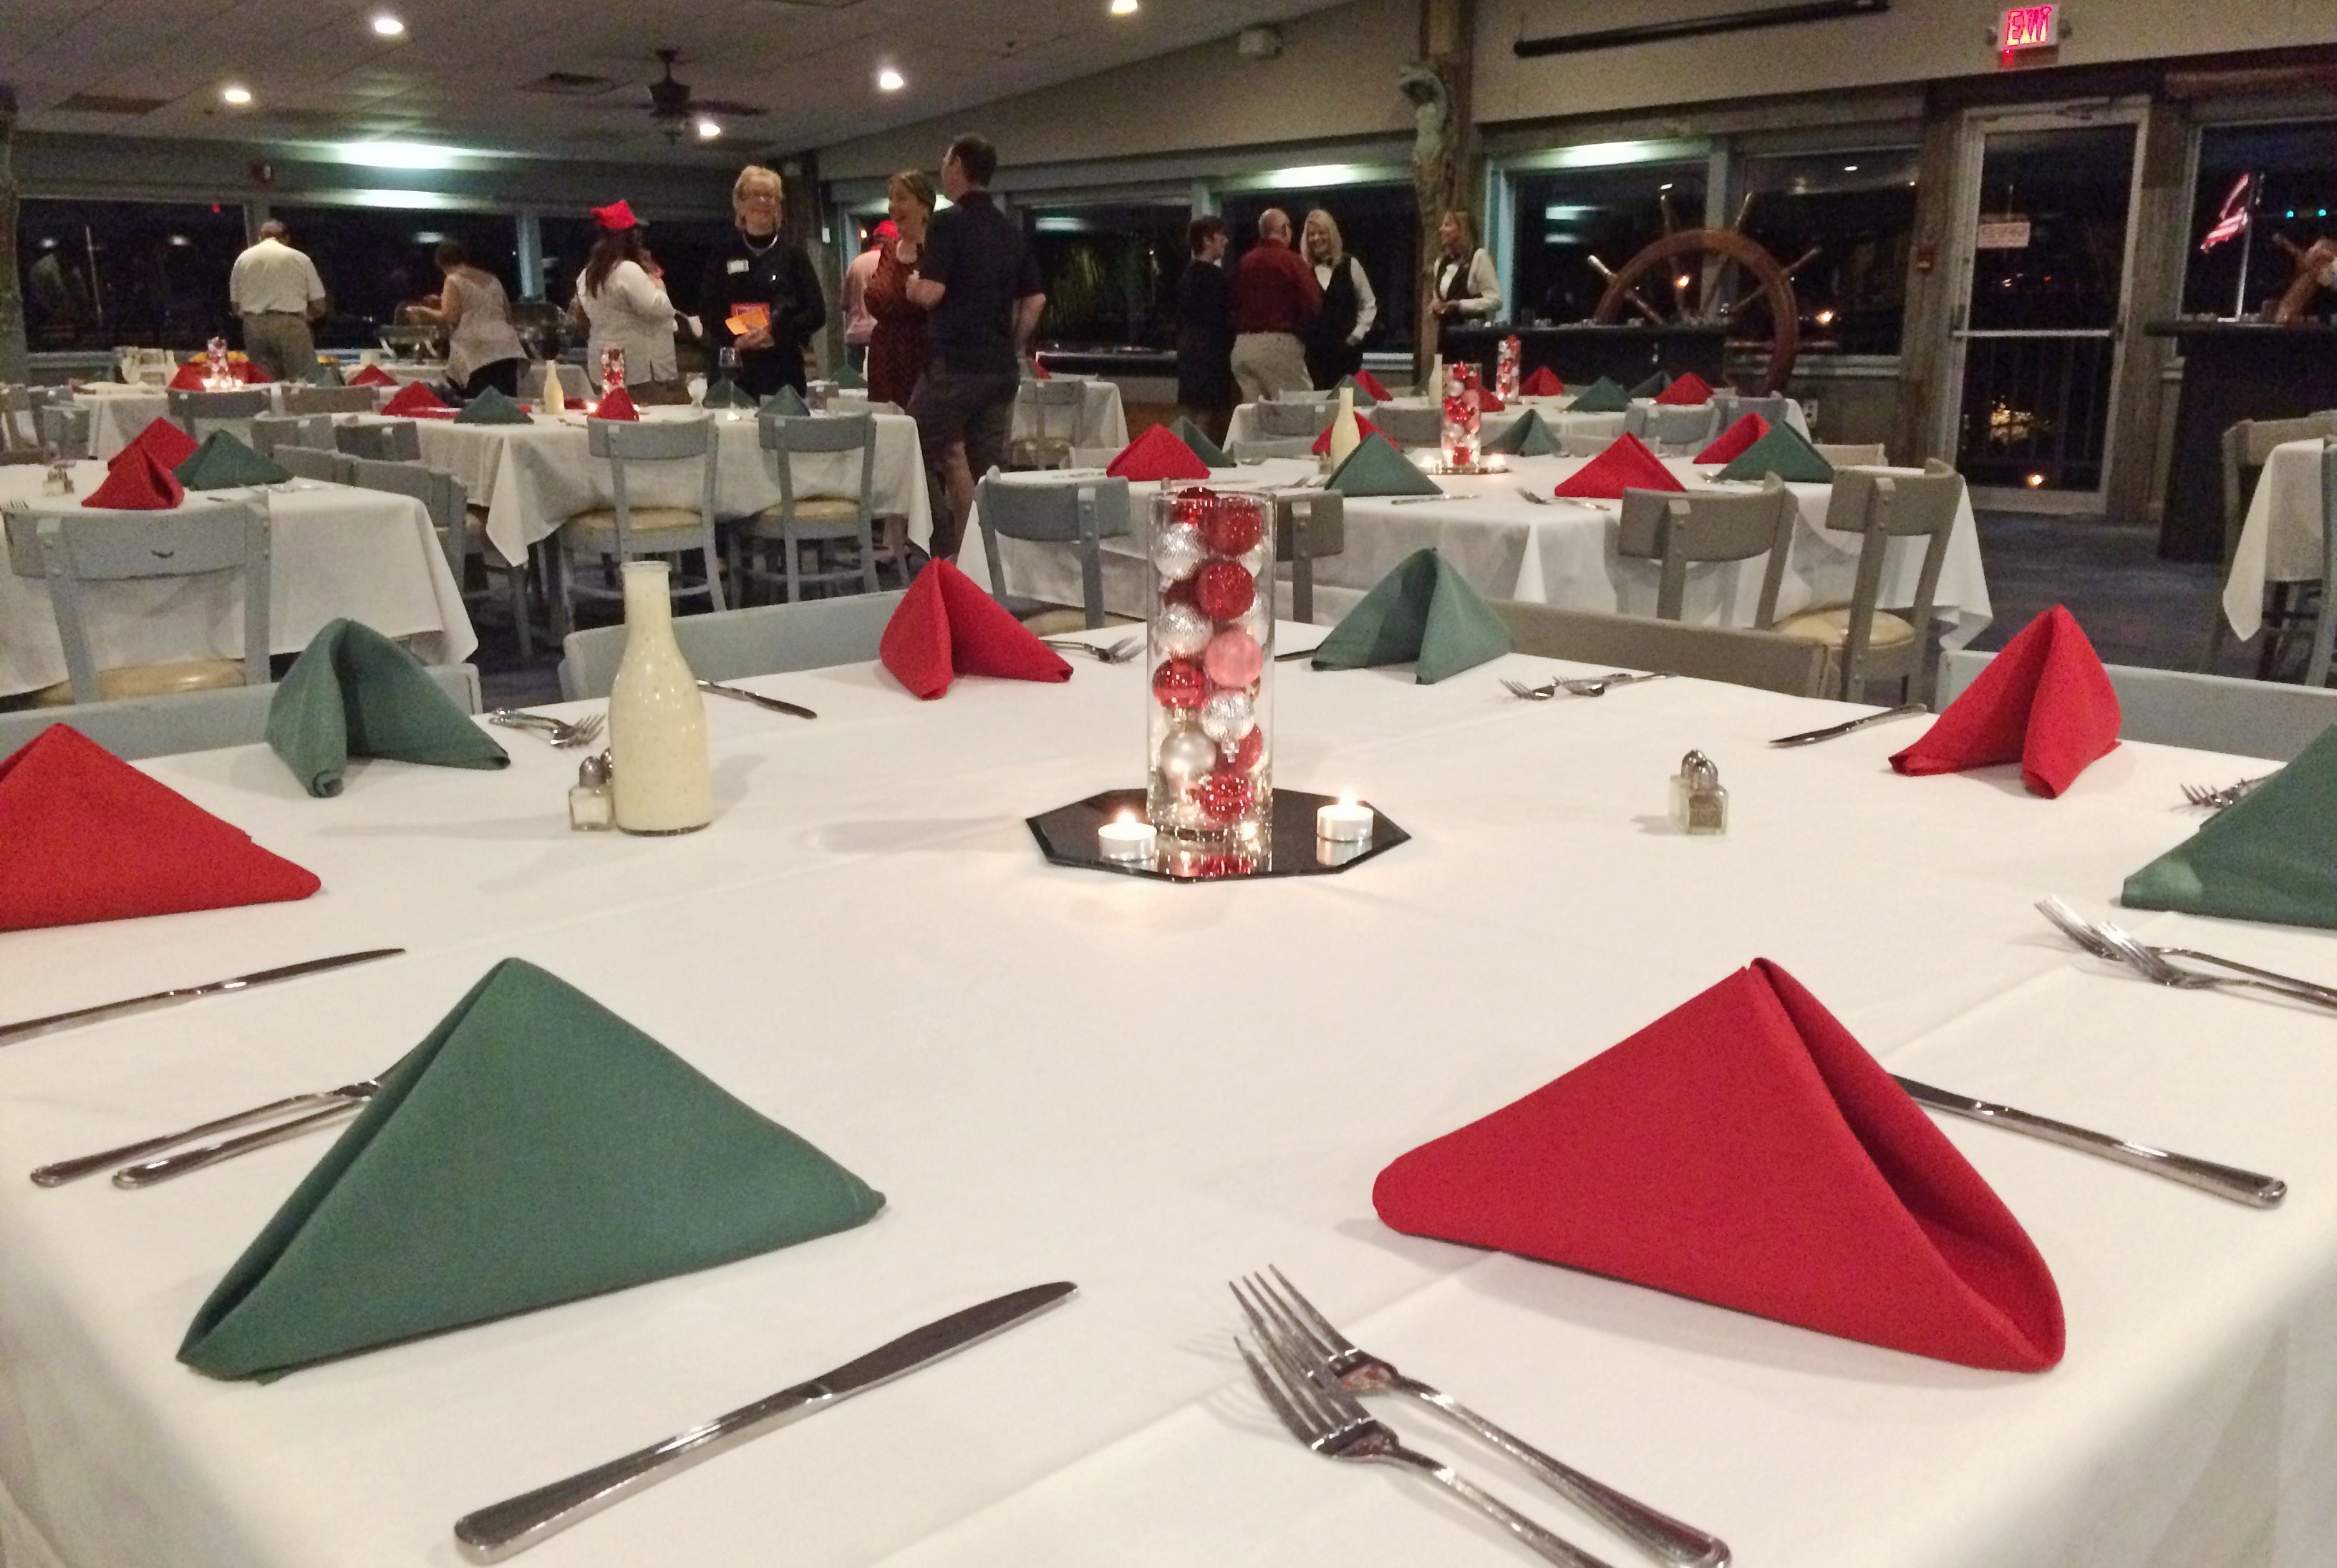 We were honored to host the Blalock Walters Casino Night Holiday Party in The Neptune Room on Friday, December 4, 2015.